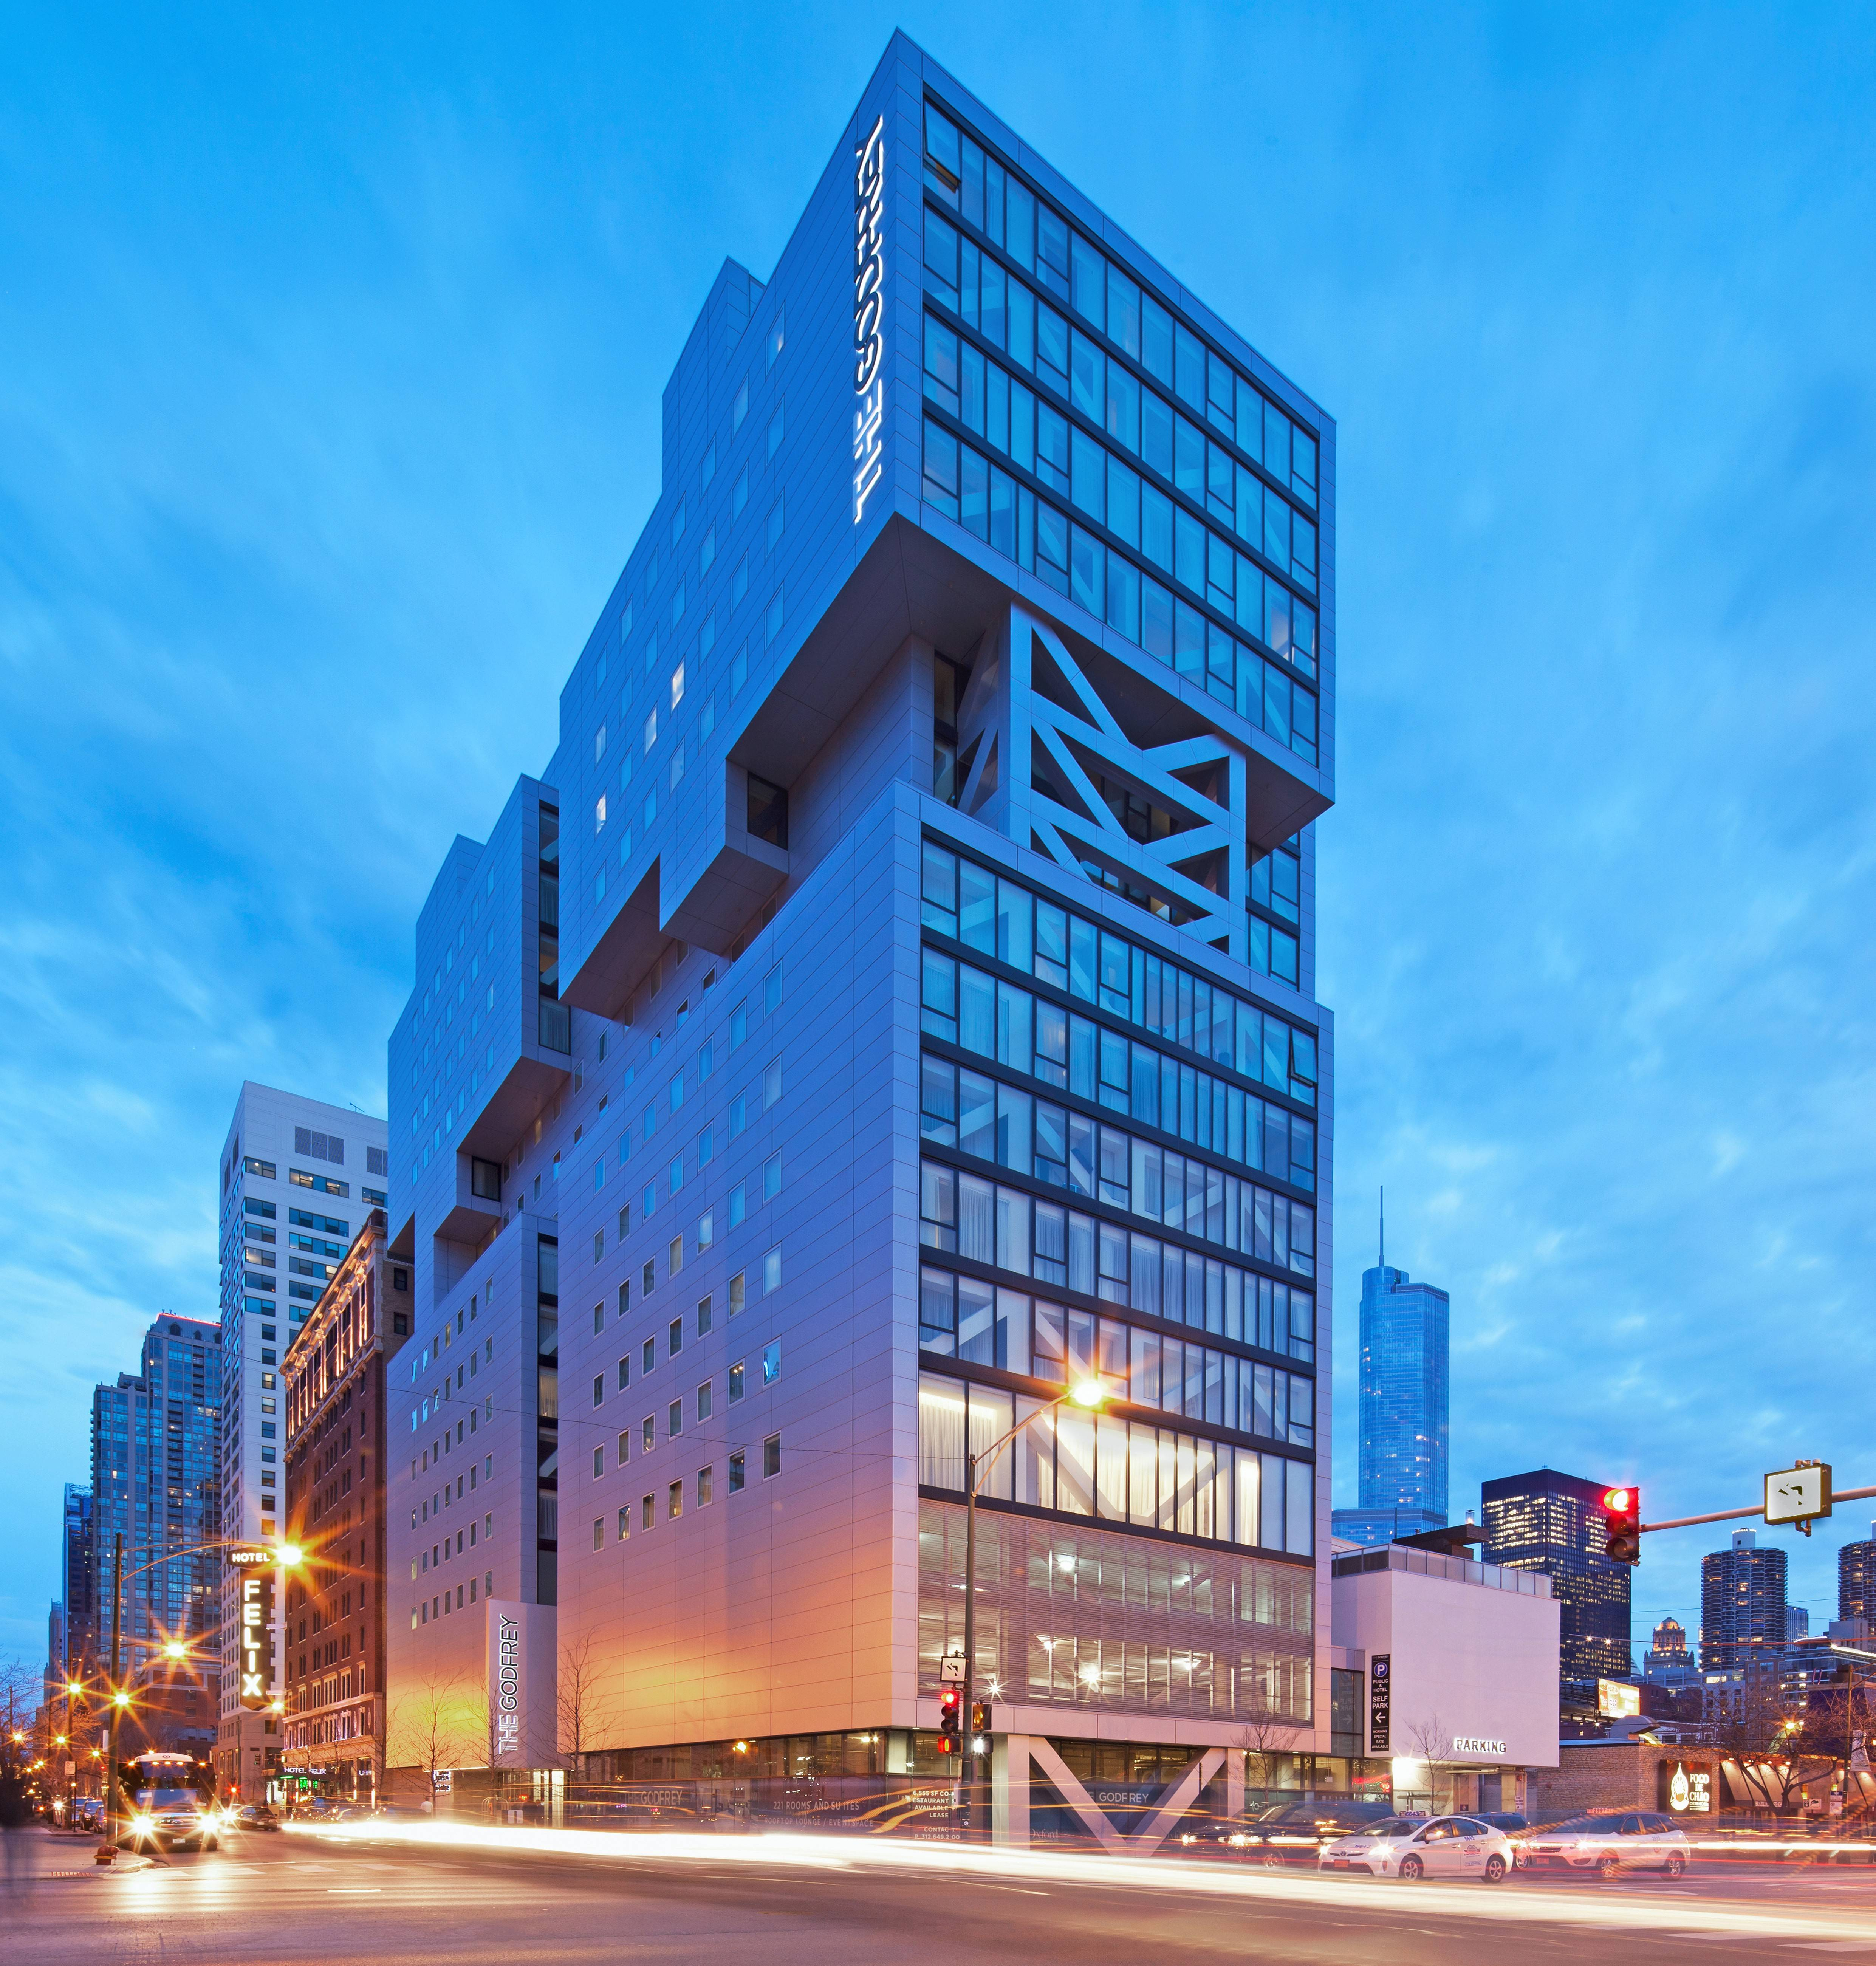 Godfrey Hotel Chicago offers summer packages for shoppers and art aficionados.